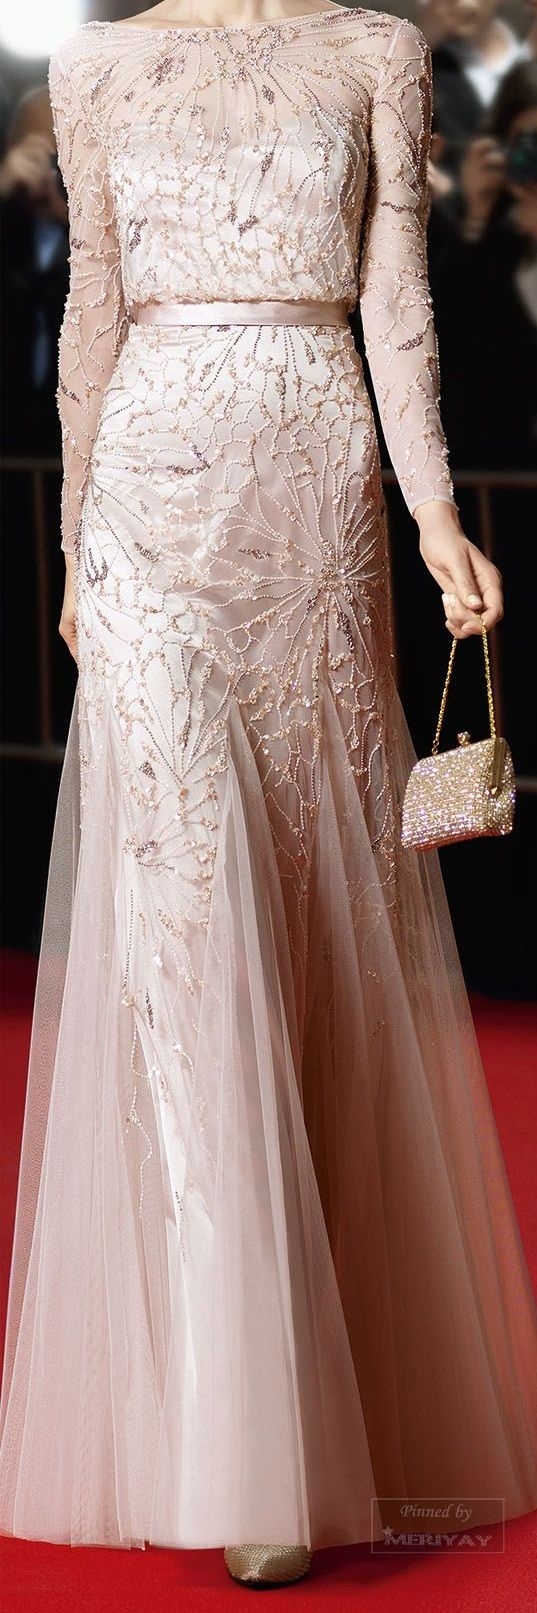 I imagine if I ever decide to marry, Id feel like a Princess in something like this.